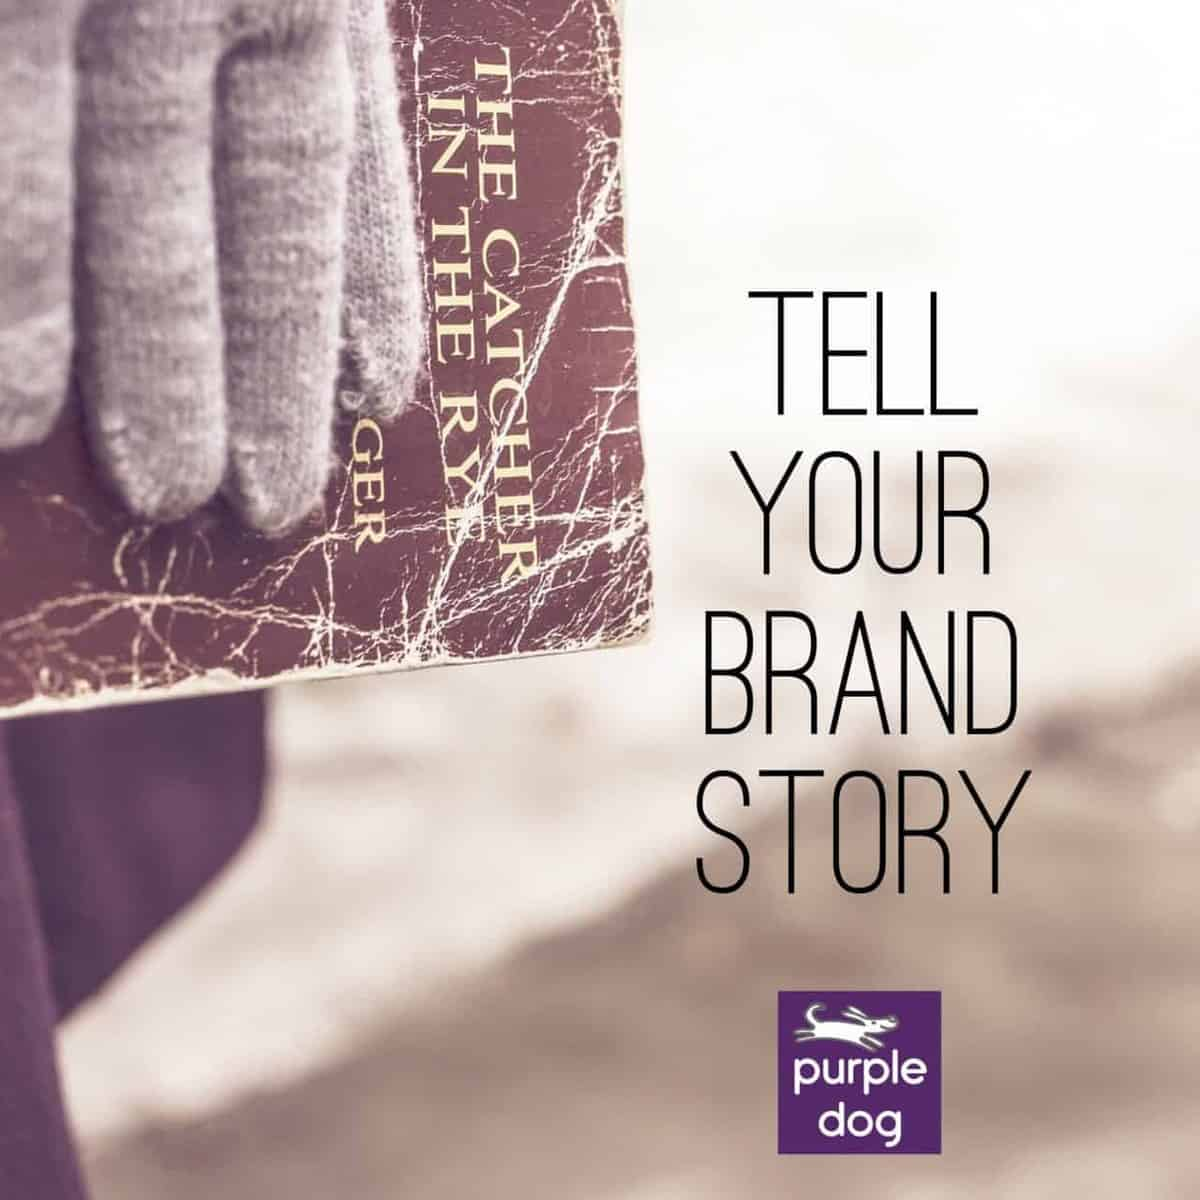 Use your blog to help tell your brand story